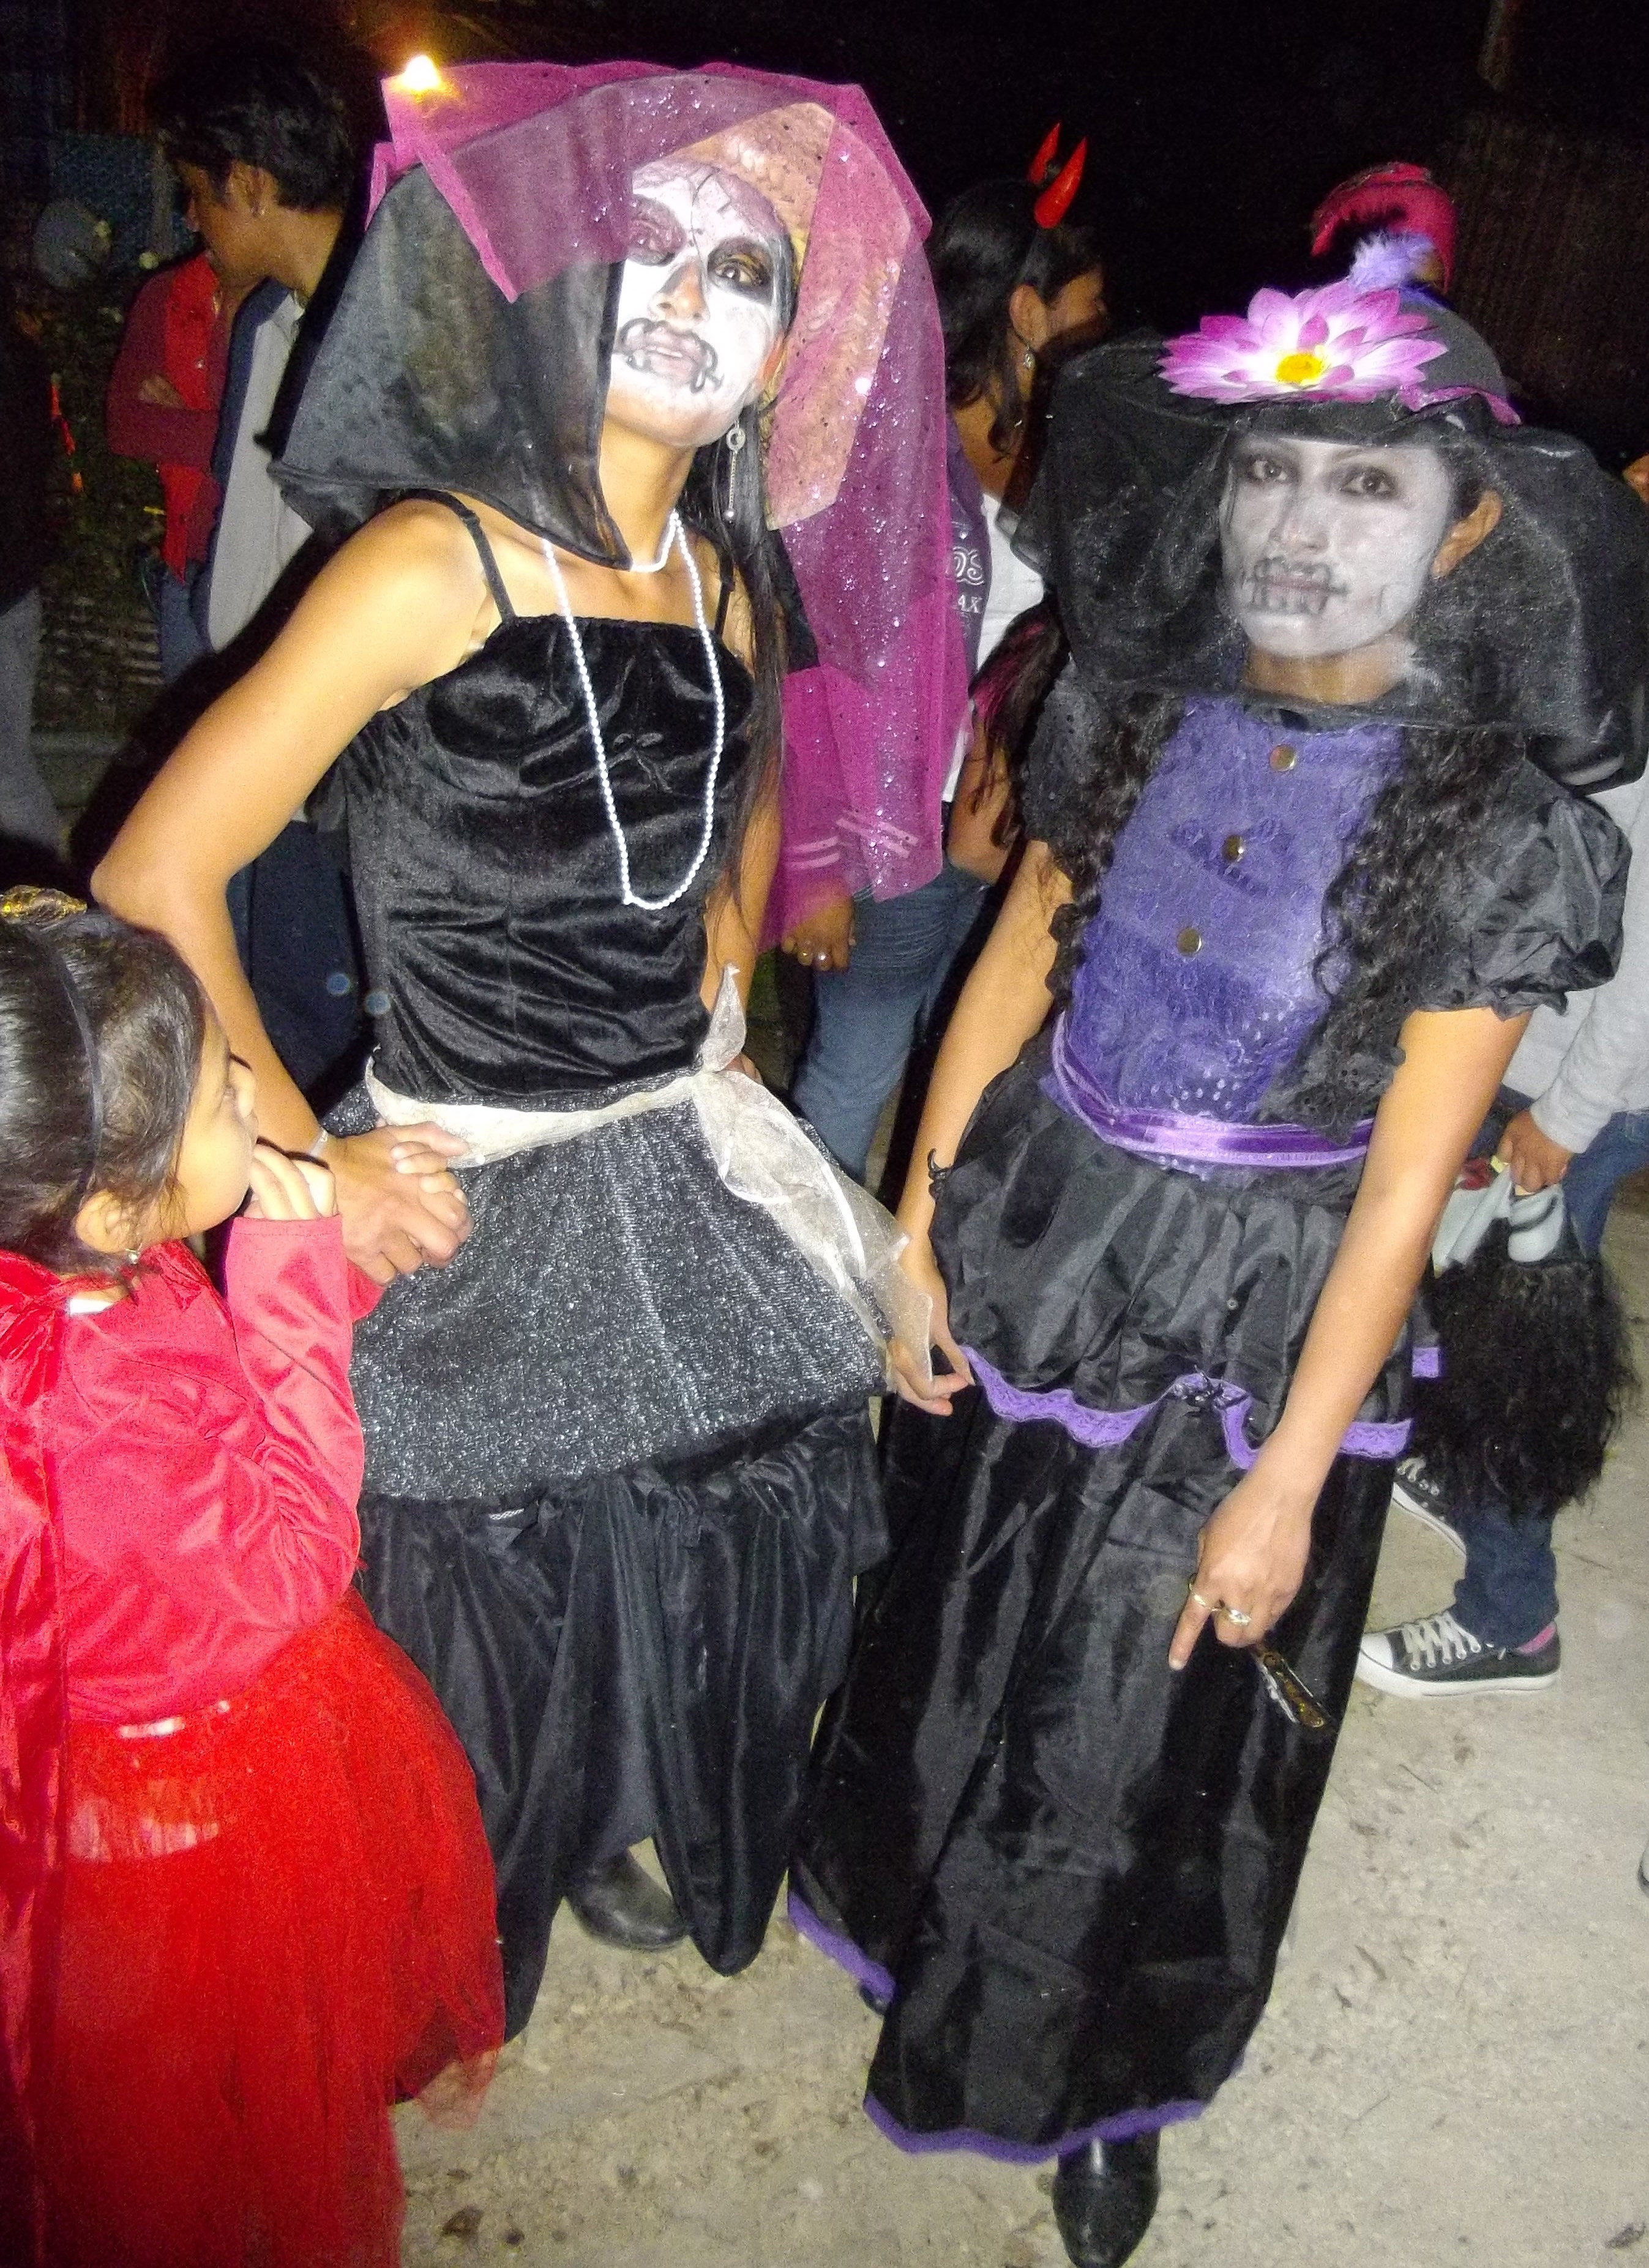 Day of dead teenagers dressed as witches